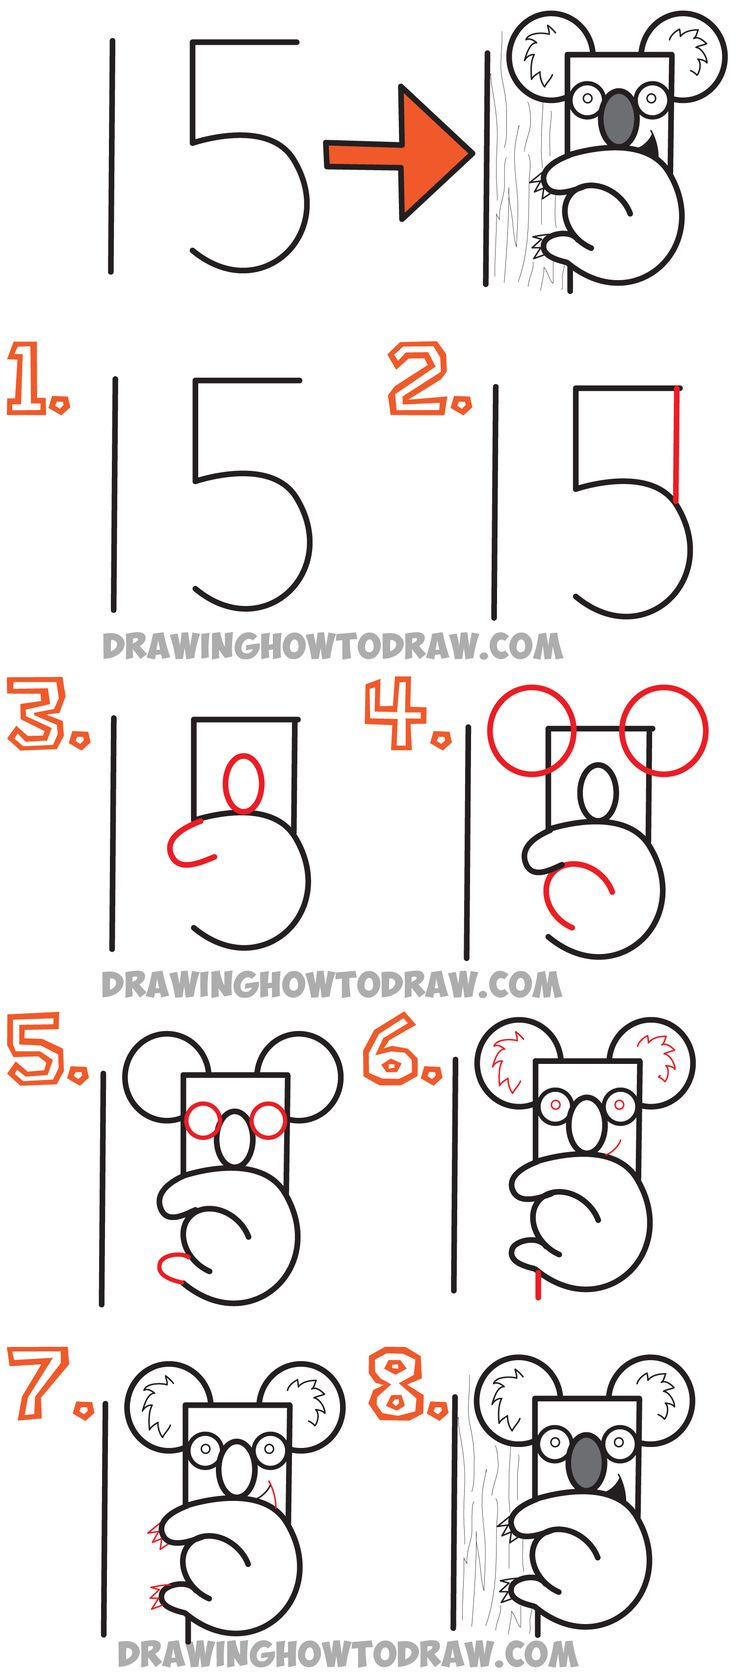 Find This Pin And More On Drawing With Letters, Numbers And Words For Kids